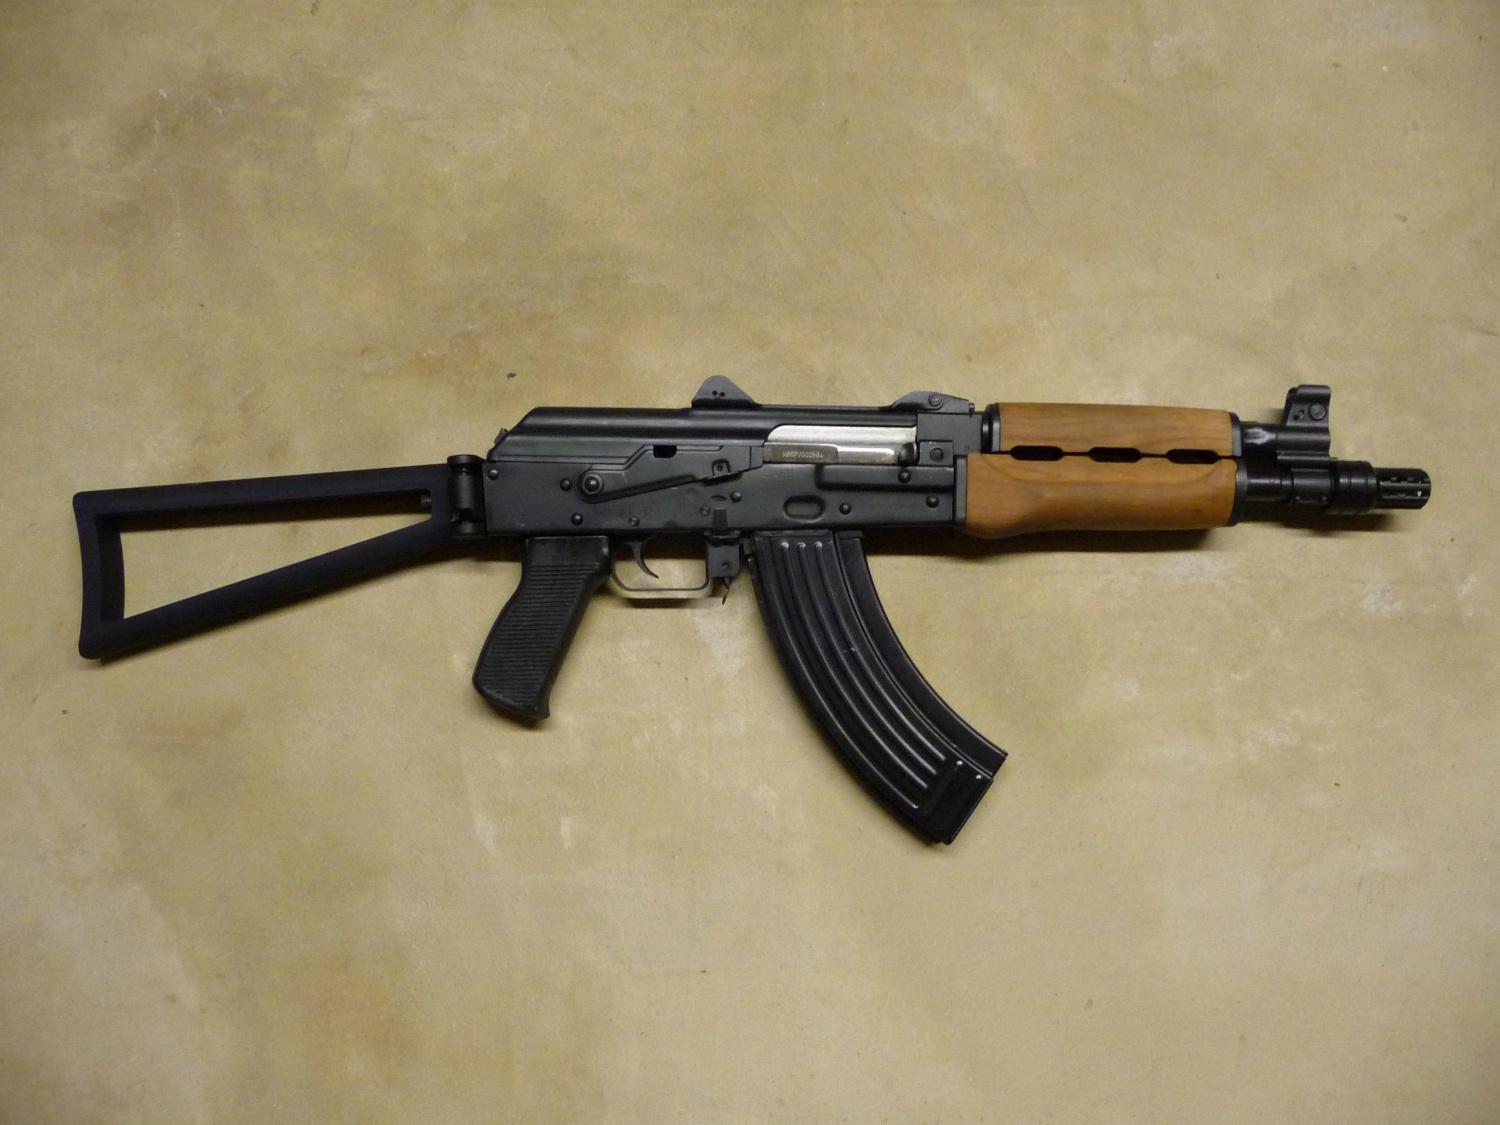 Triangular stock on a Yugo M92. Traditional AK74 stocks are stamped, whereas Manticores are cast.